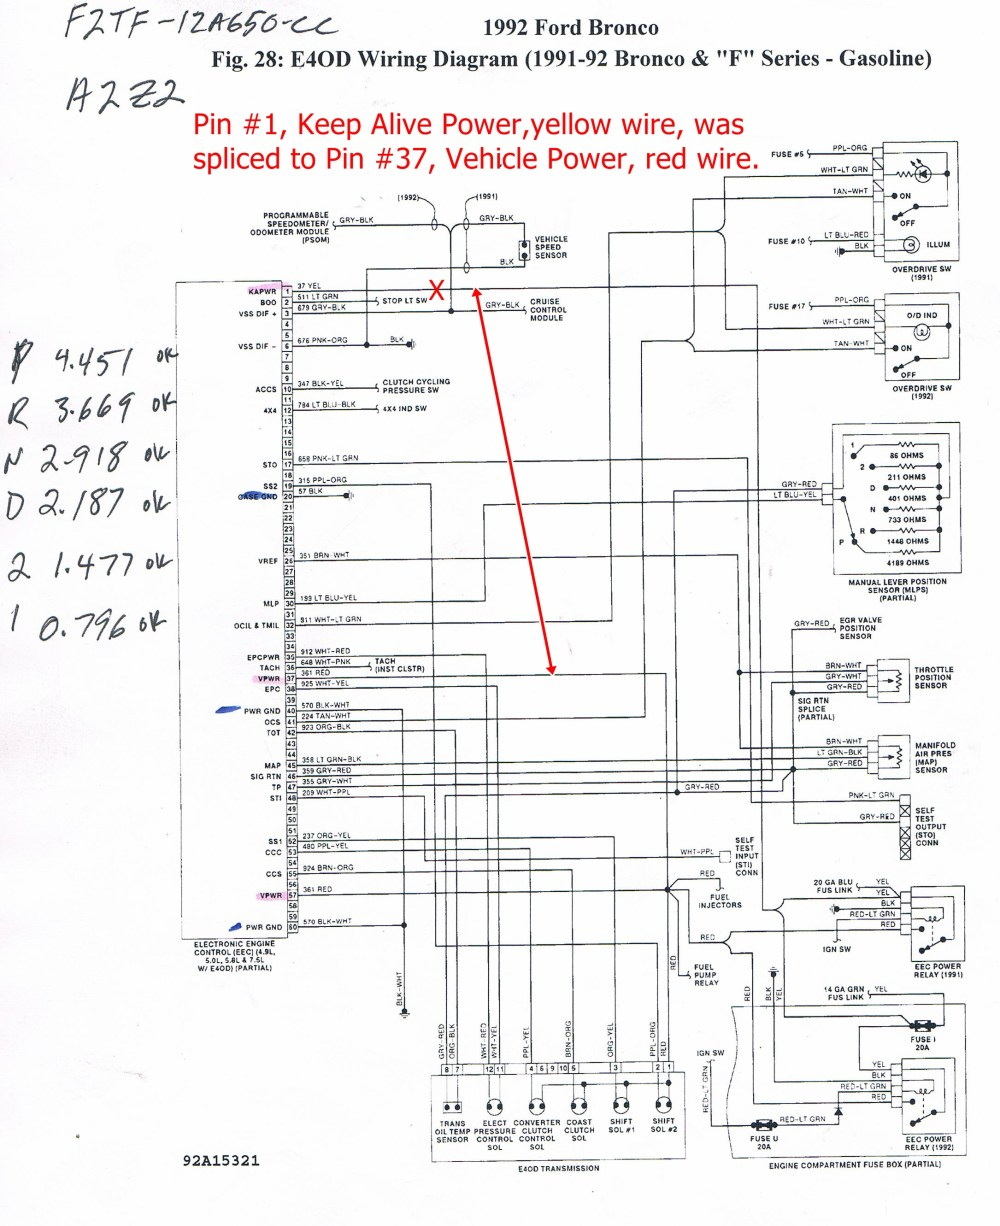 medium resolution of 1997 truck wiring harness 7 pin wiring diagram for you ford truck trailer harness 1997 truck wiring harness 7 pin